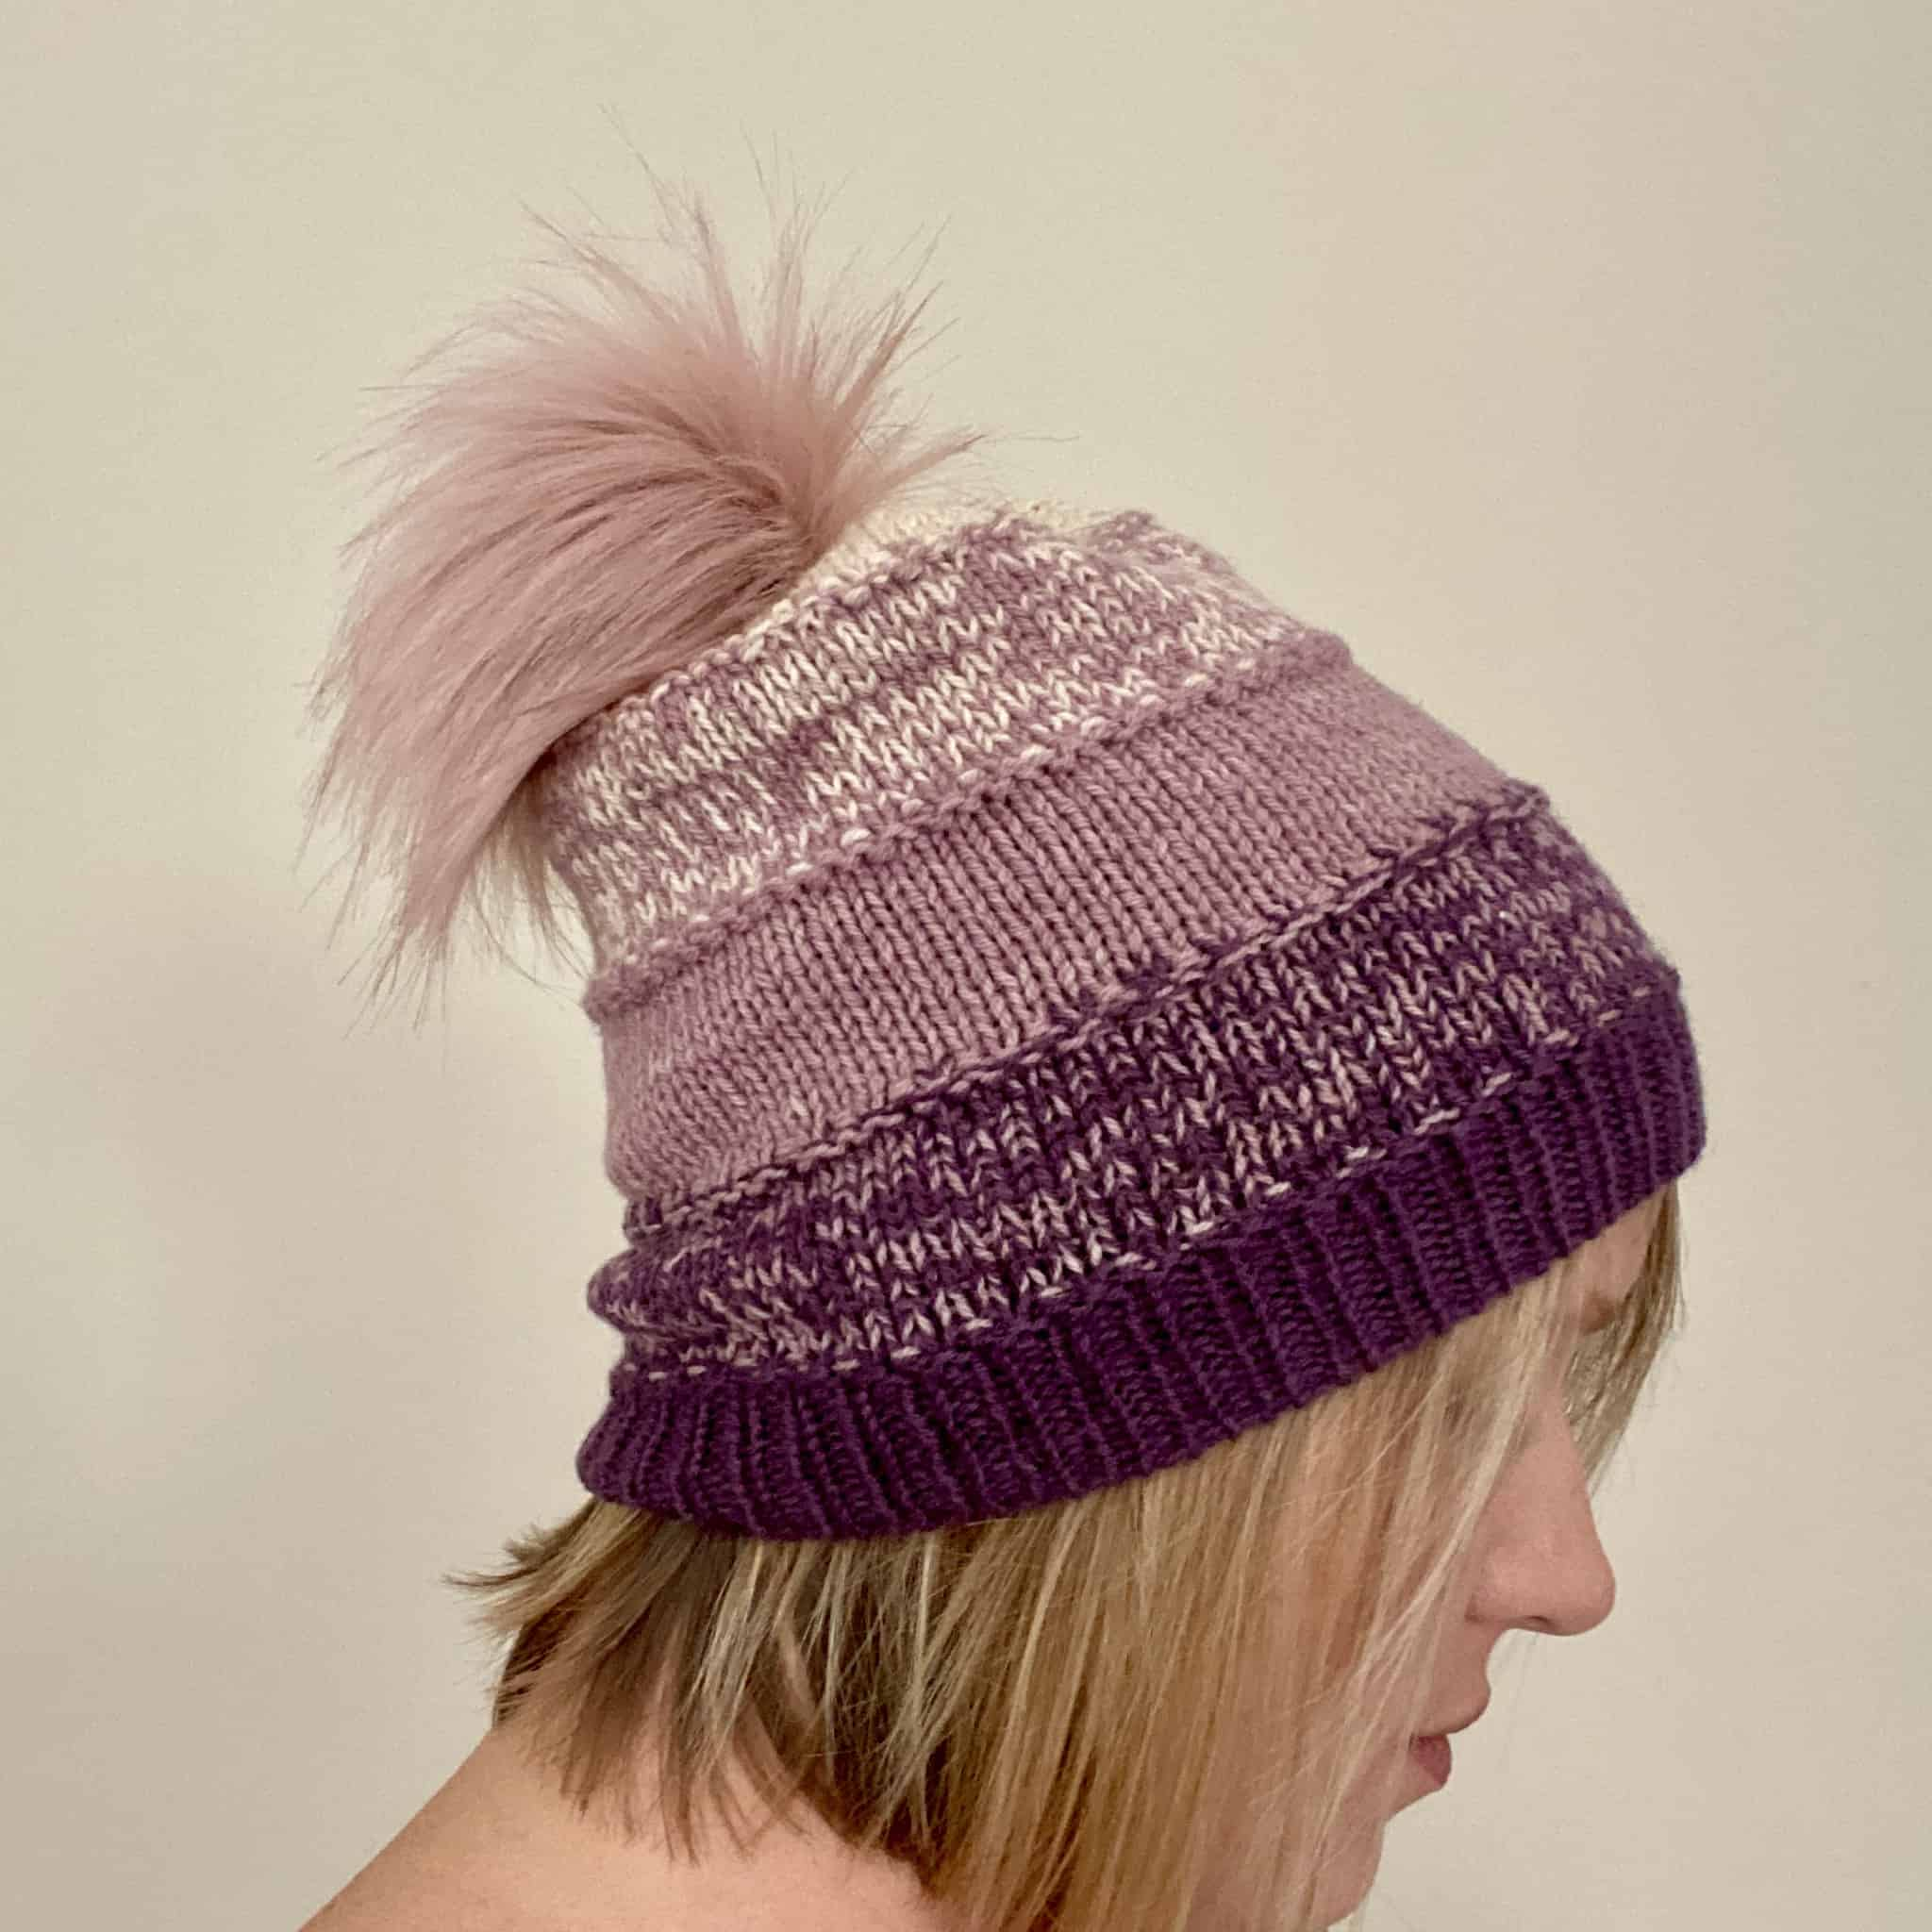 A plum and pink hat with a pink pom pom.